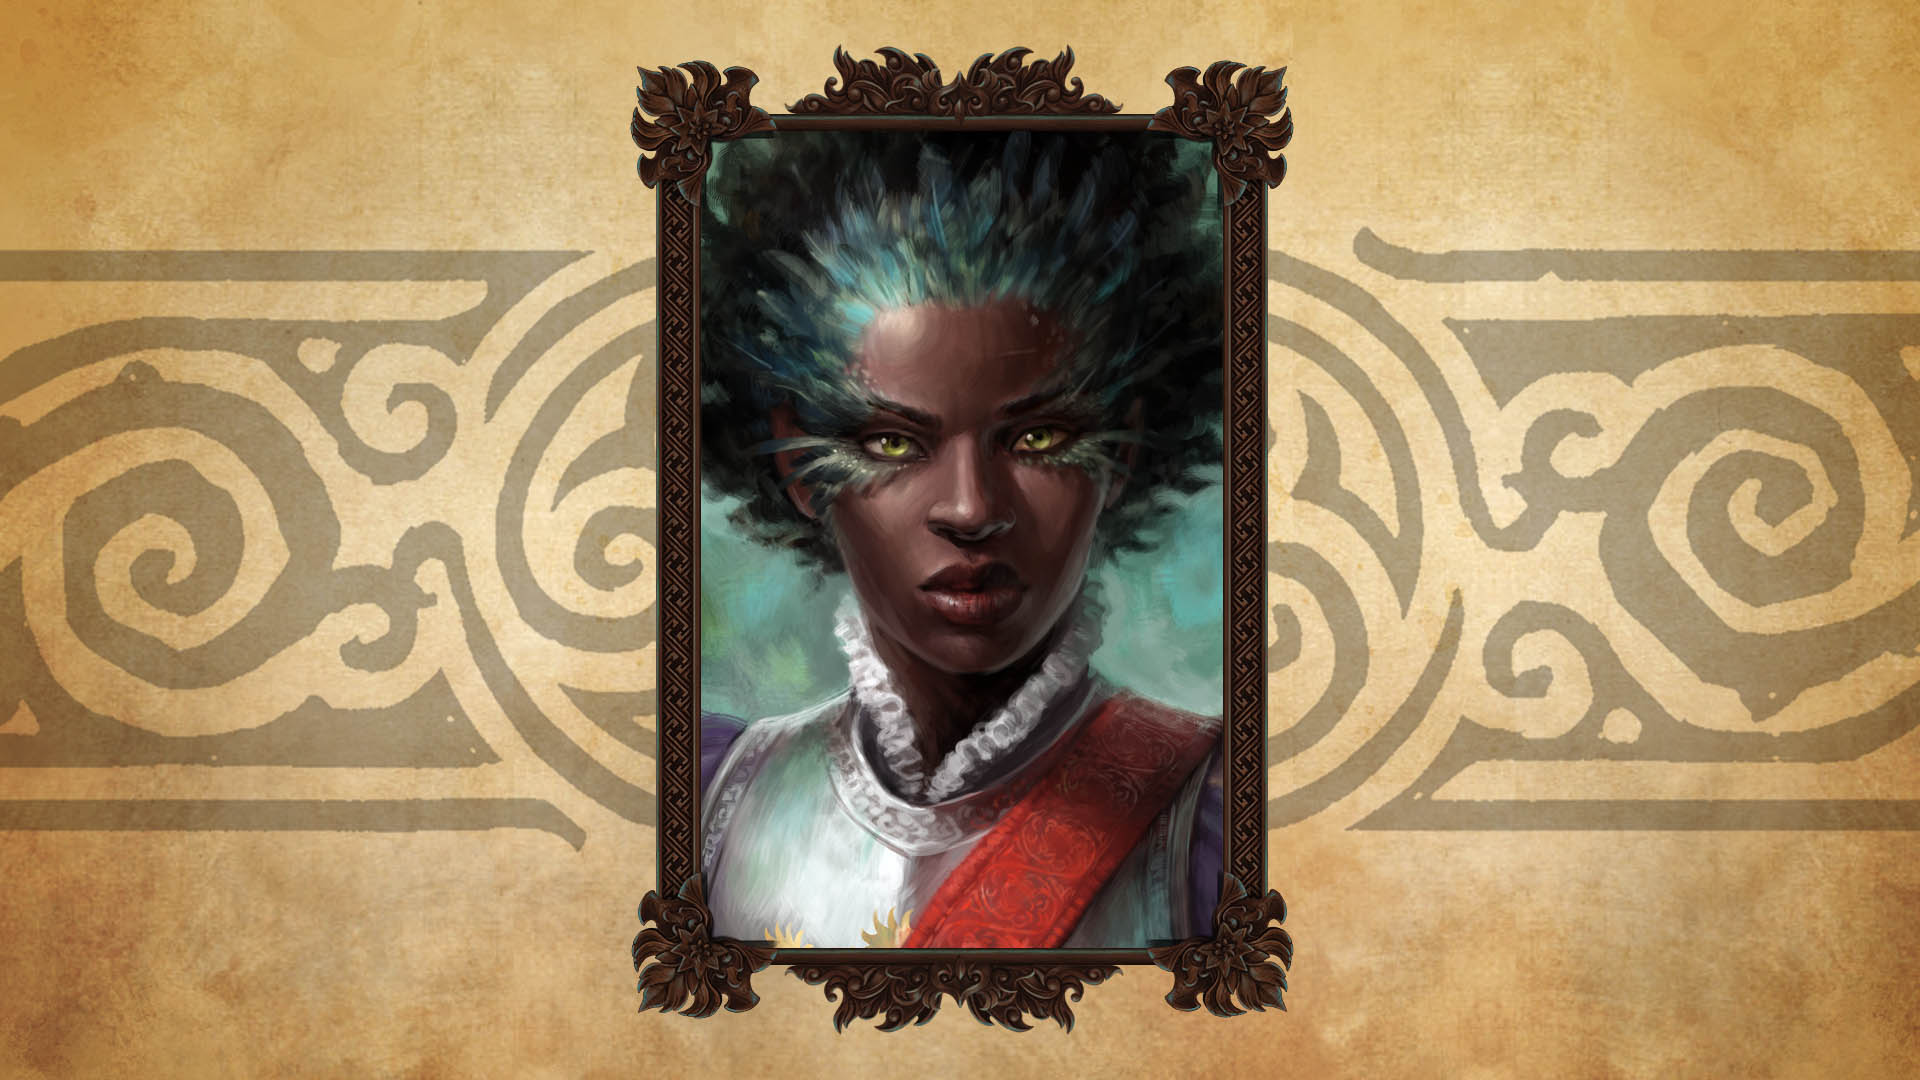 Showcase :: Pillars of Eternity II: Deadfire